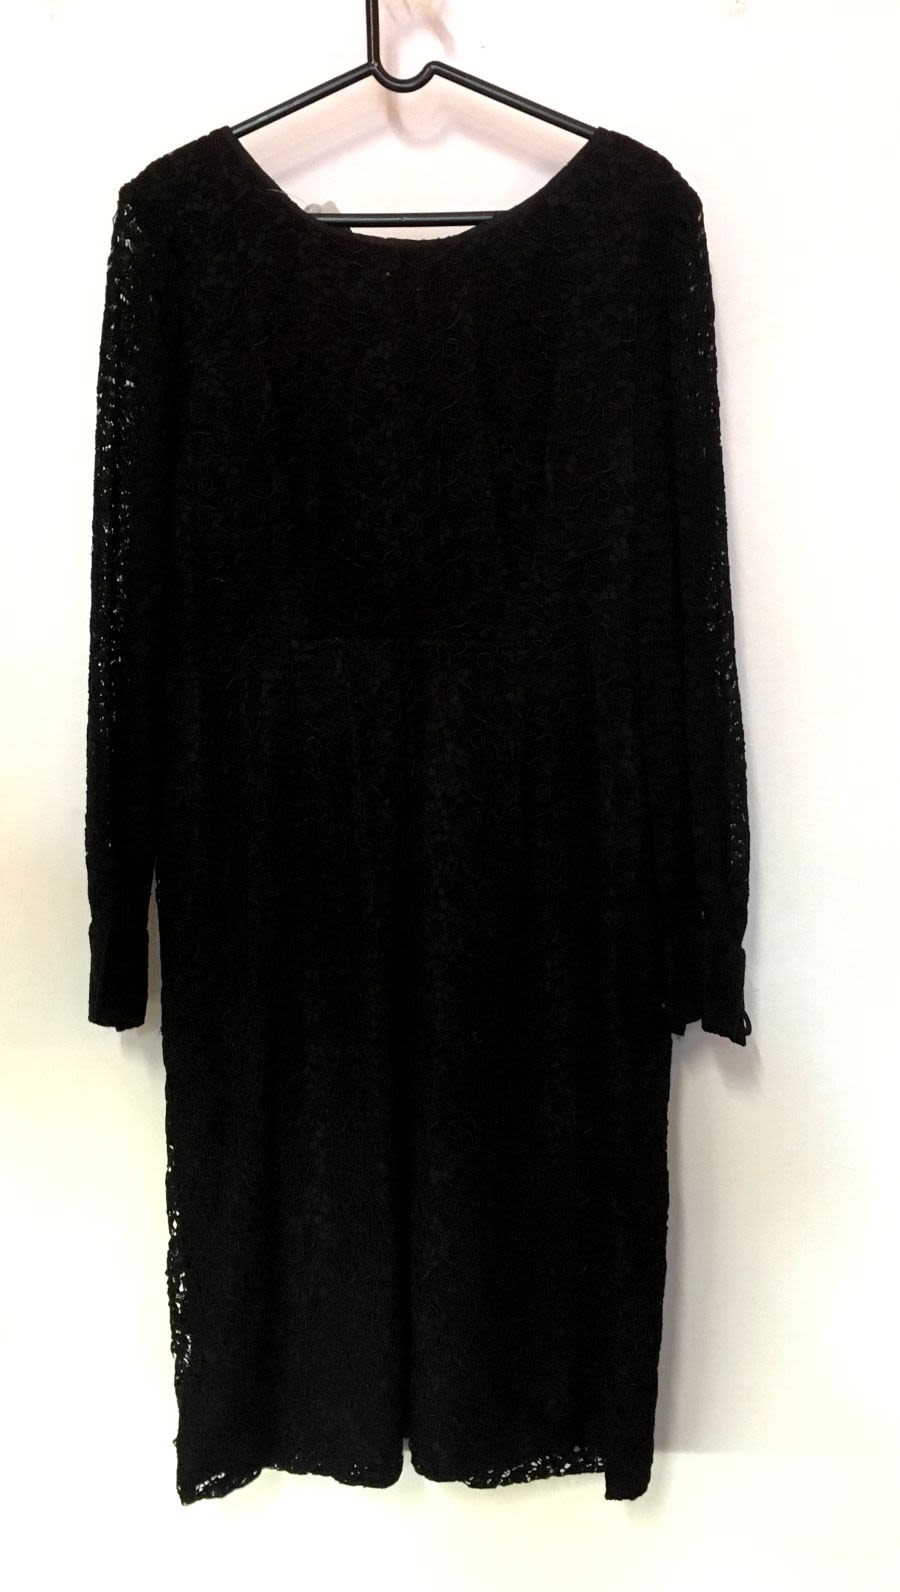 Vintage Womens 1960s Black Lace Dress